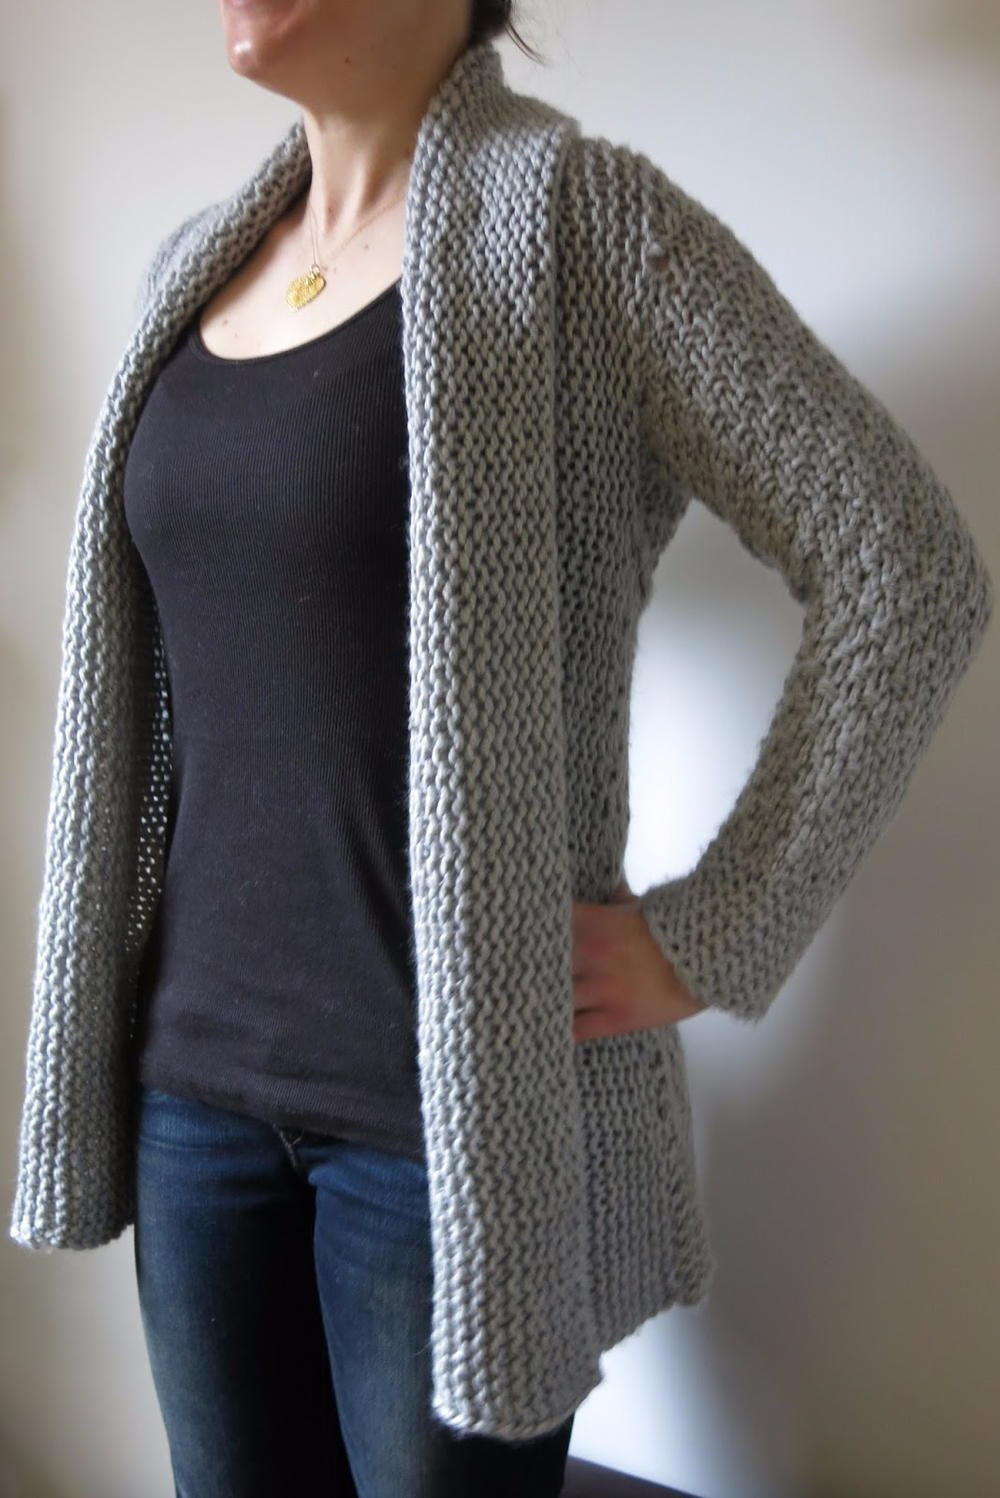 Easy chunky knit cardigan pattern free patterns - Simple ...